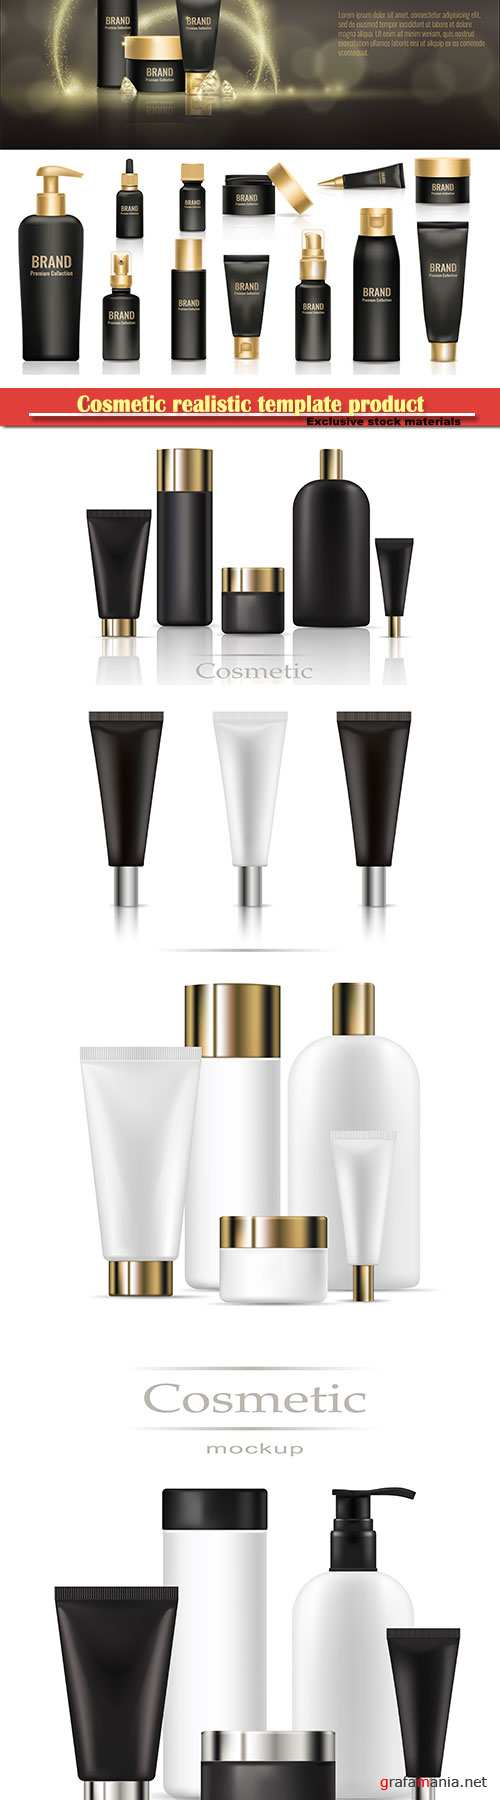 Cosmetic realistic template product package, beauty bottle